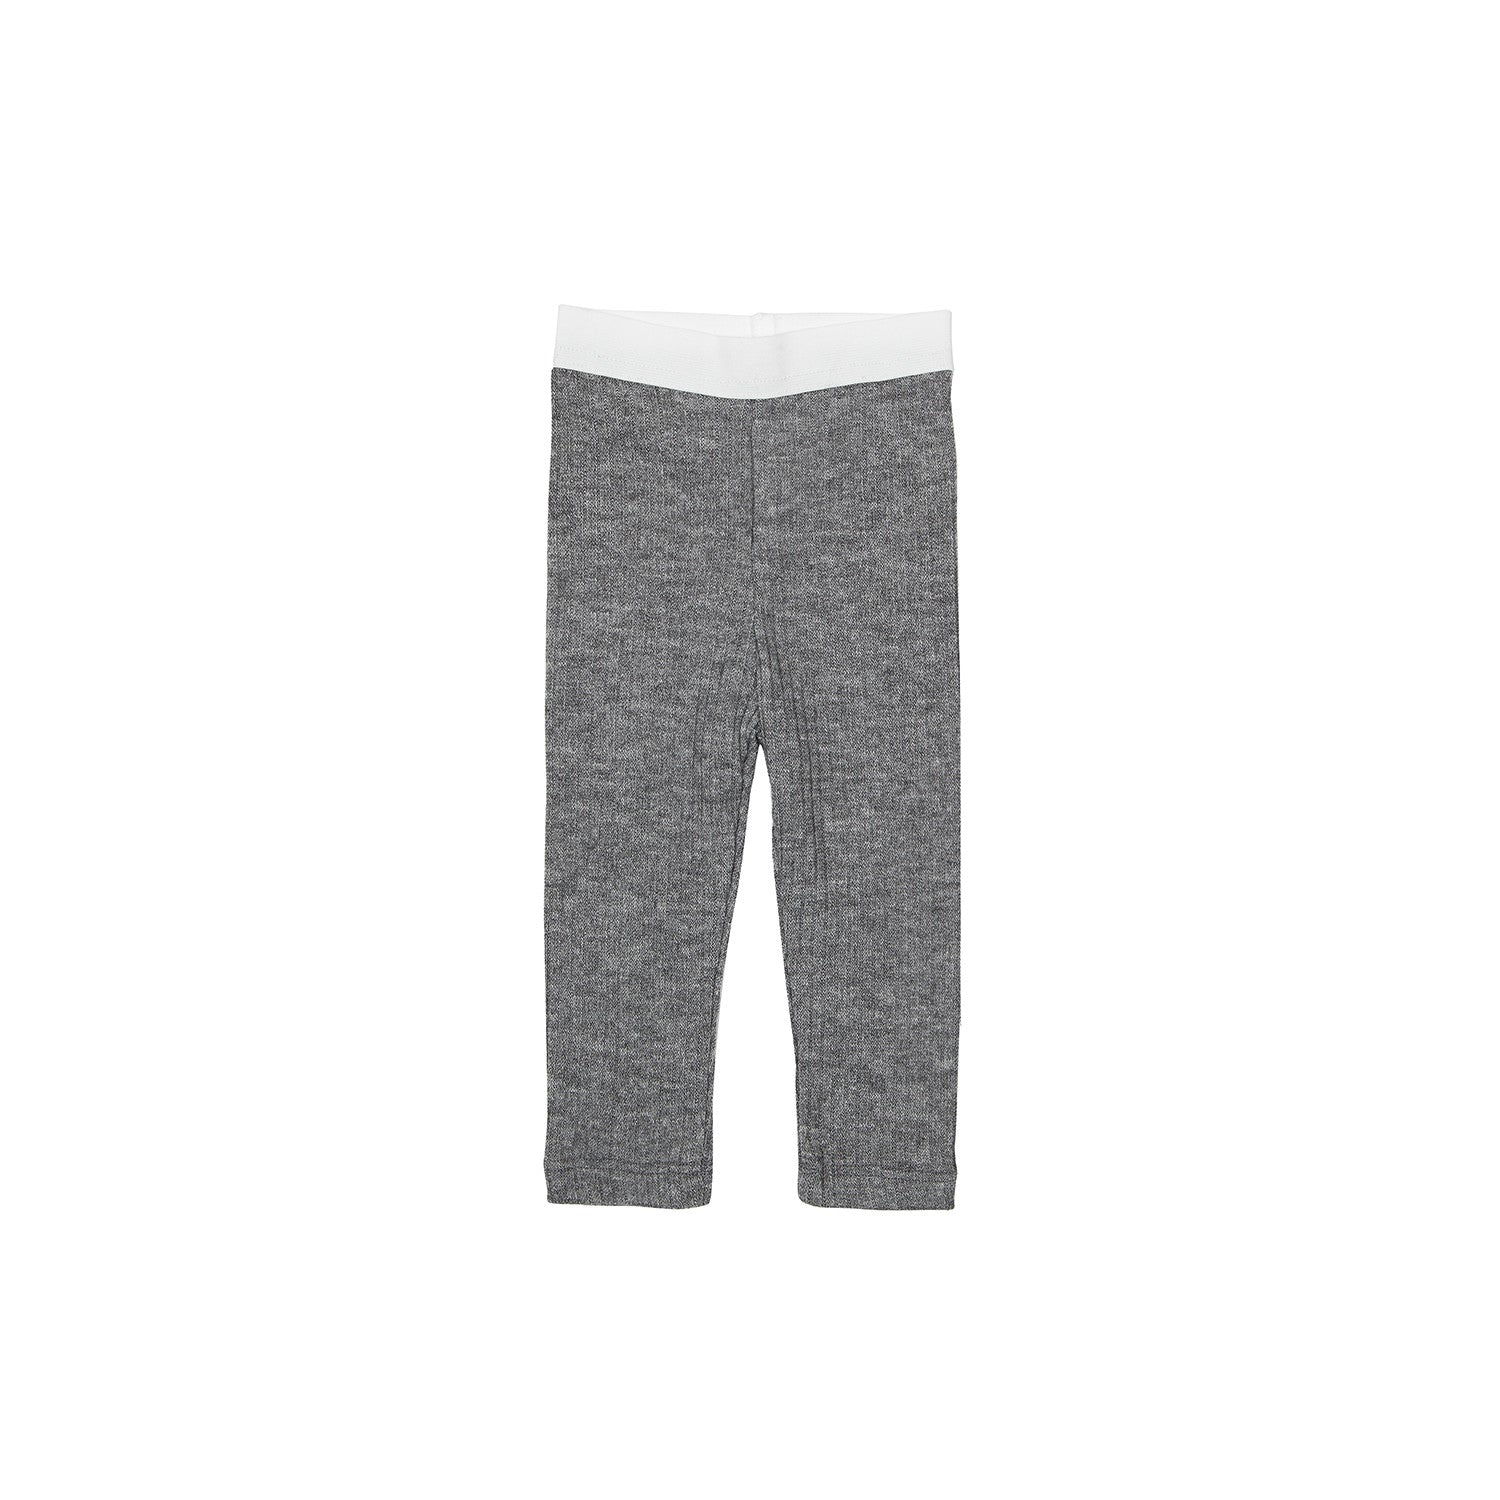 Bene Bene Charcoal Ribbed Knit Leggings